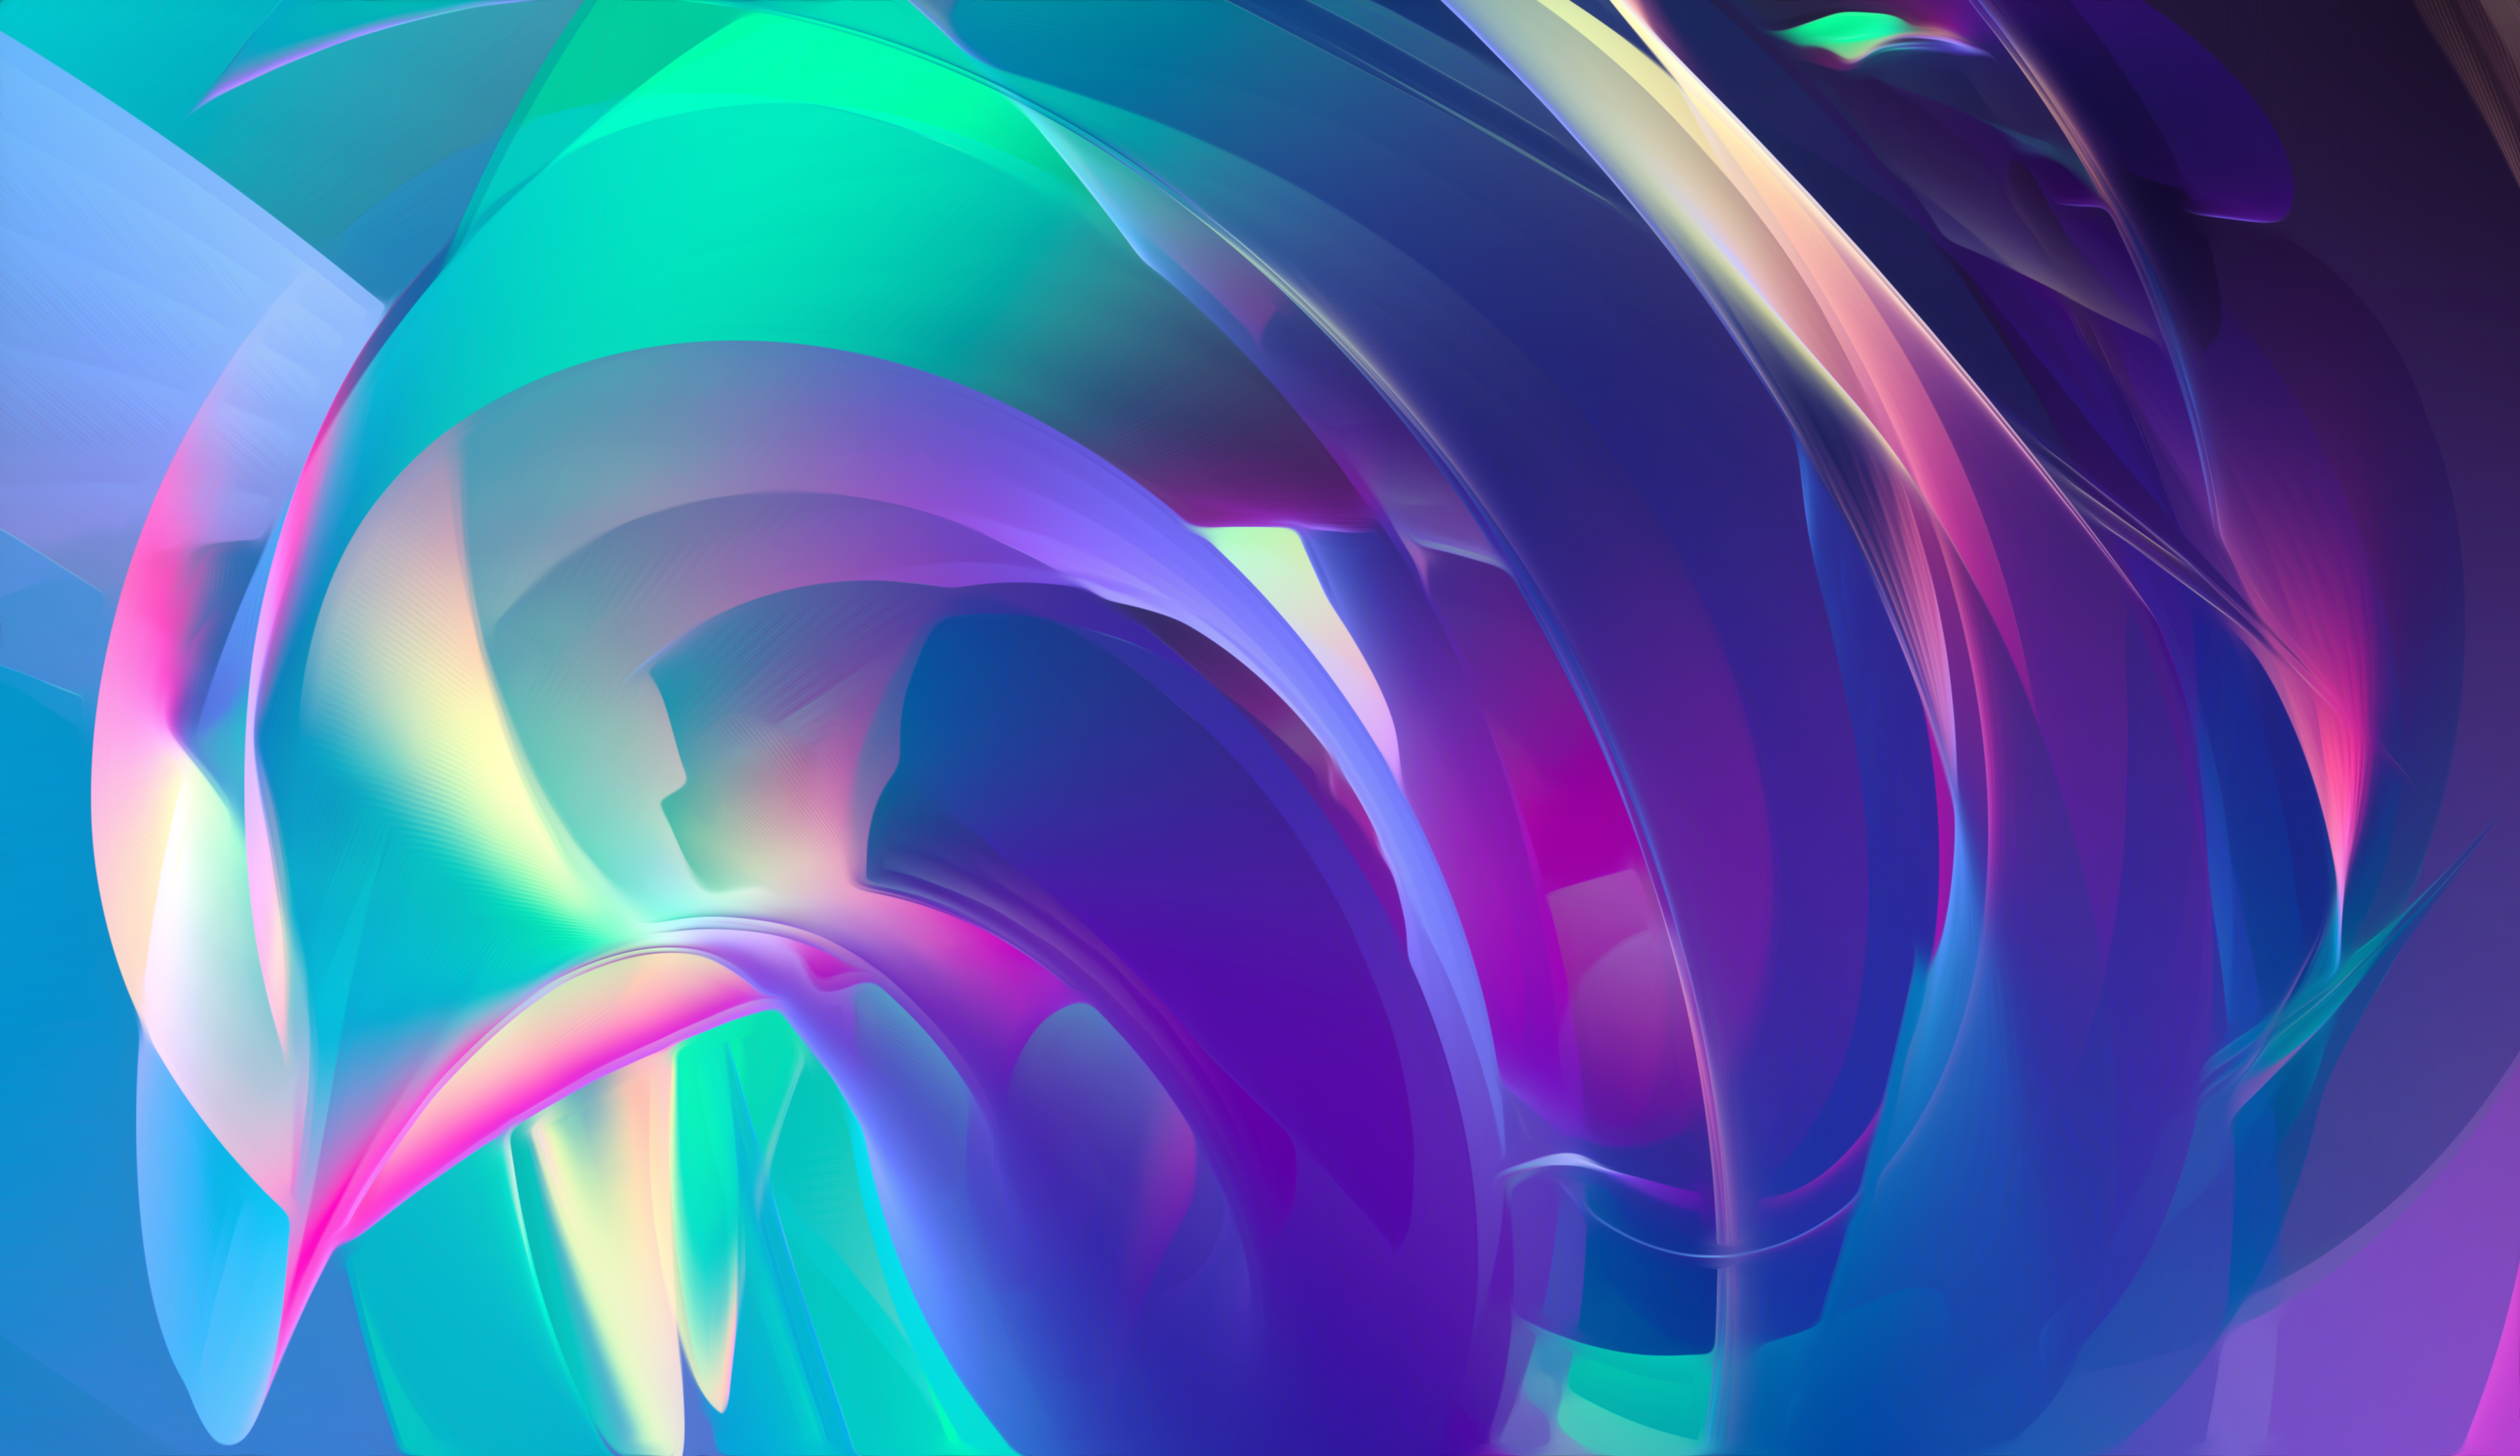 Abstract 3d Curve Doodle Hd Abstract 4k Wallpapers Images